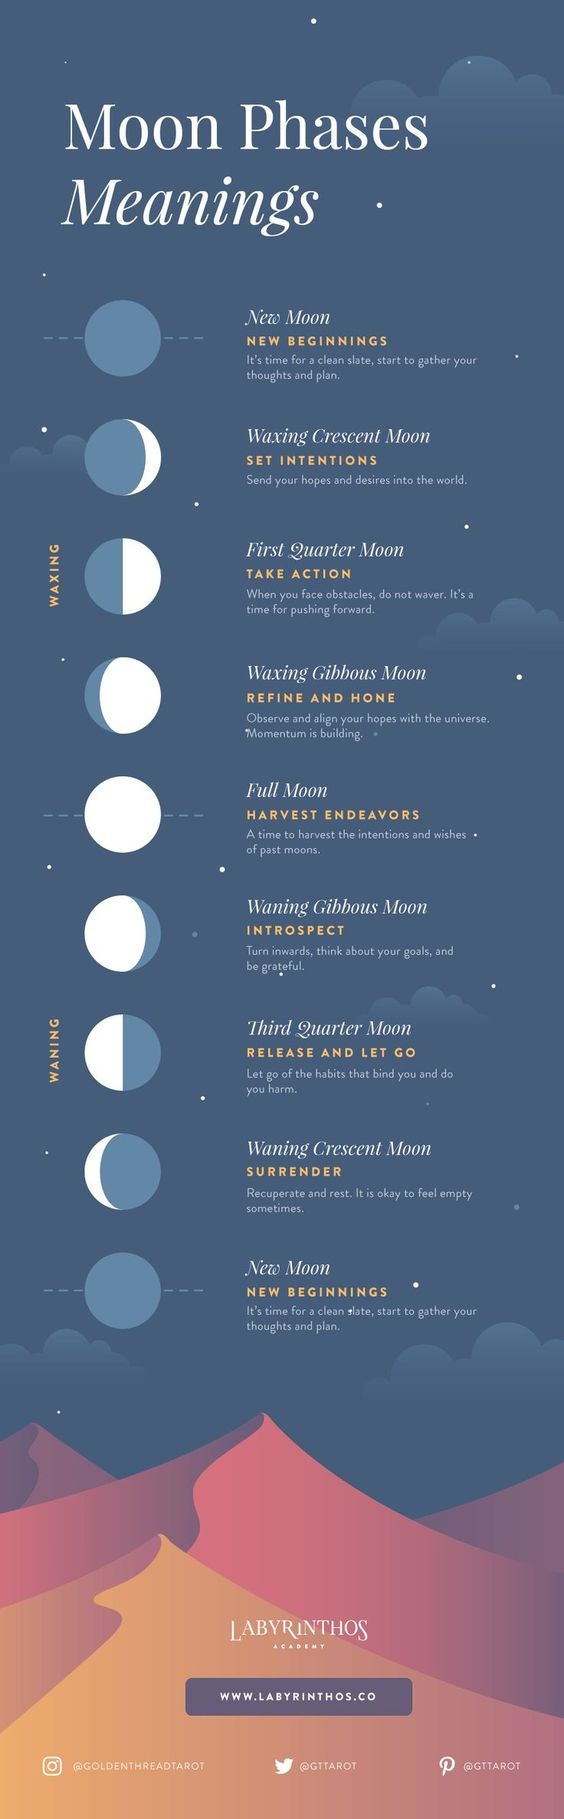 Moon phases meanings infographic a beginnerus framework for